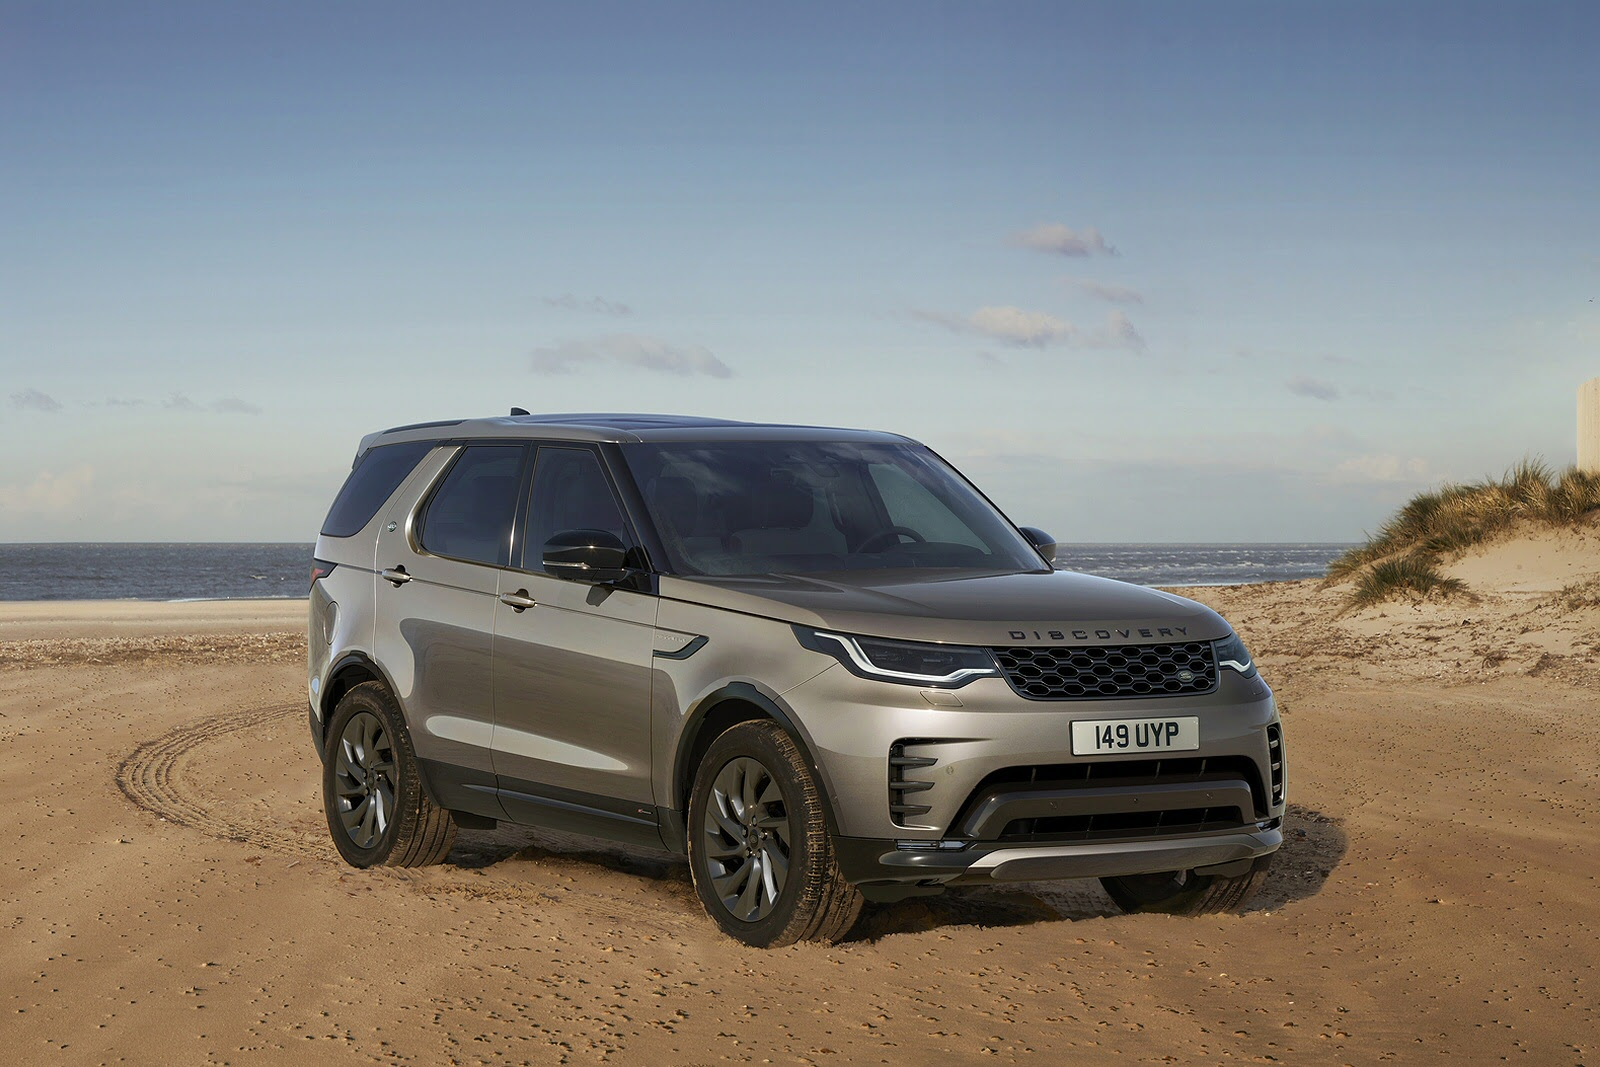 Discovery Sw